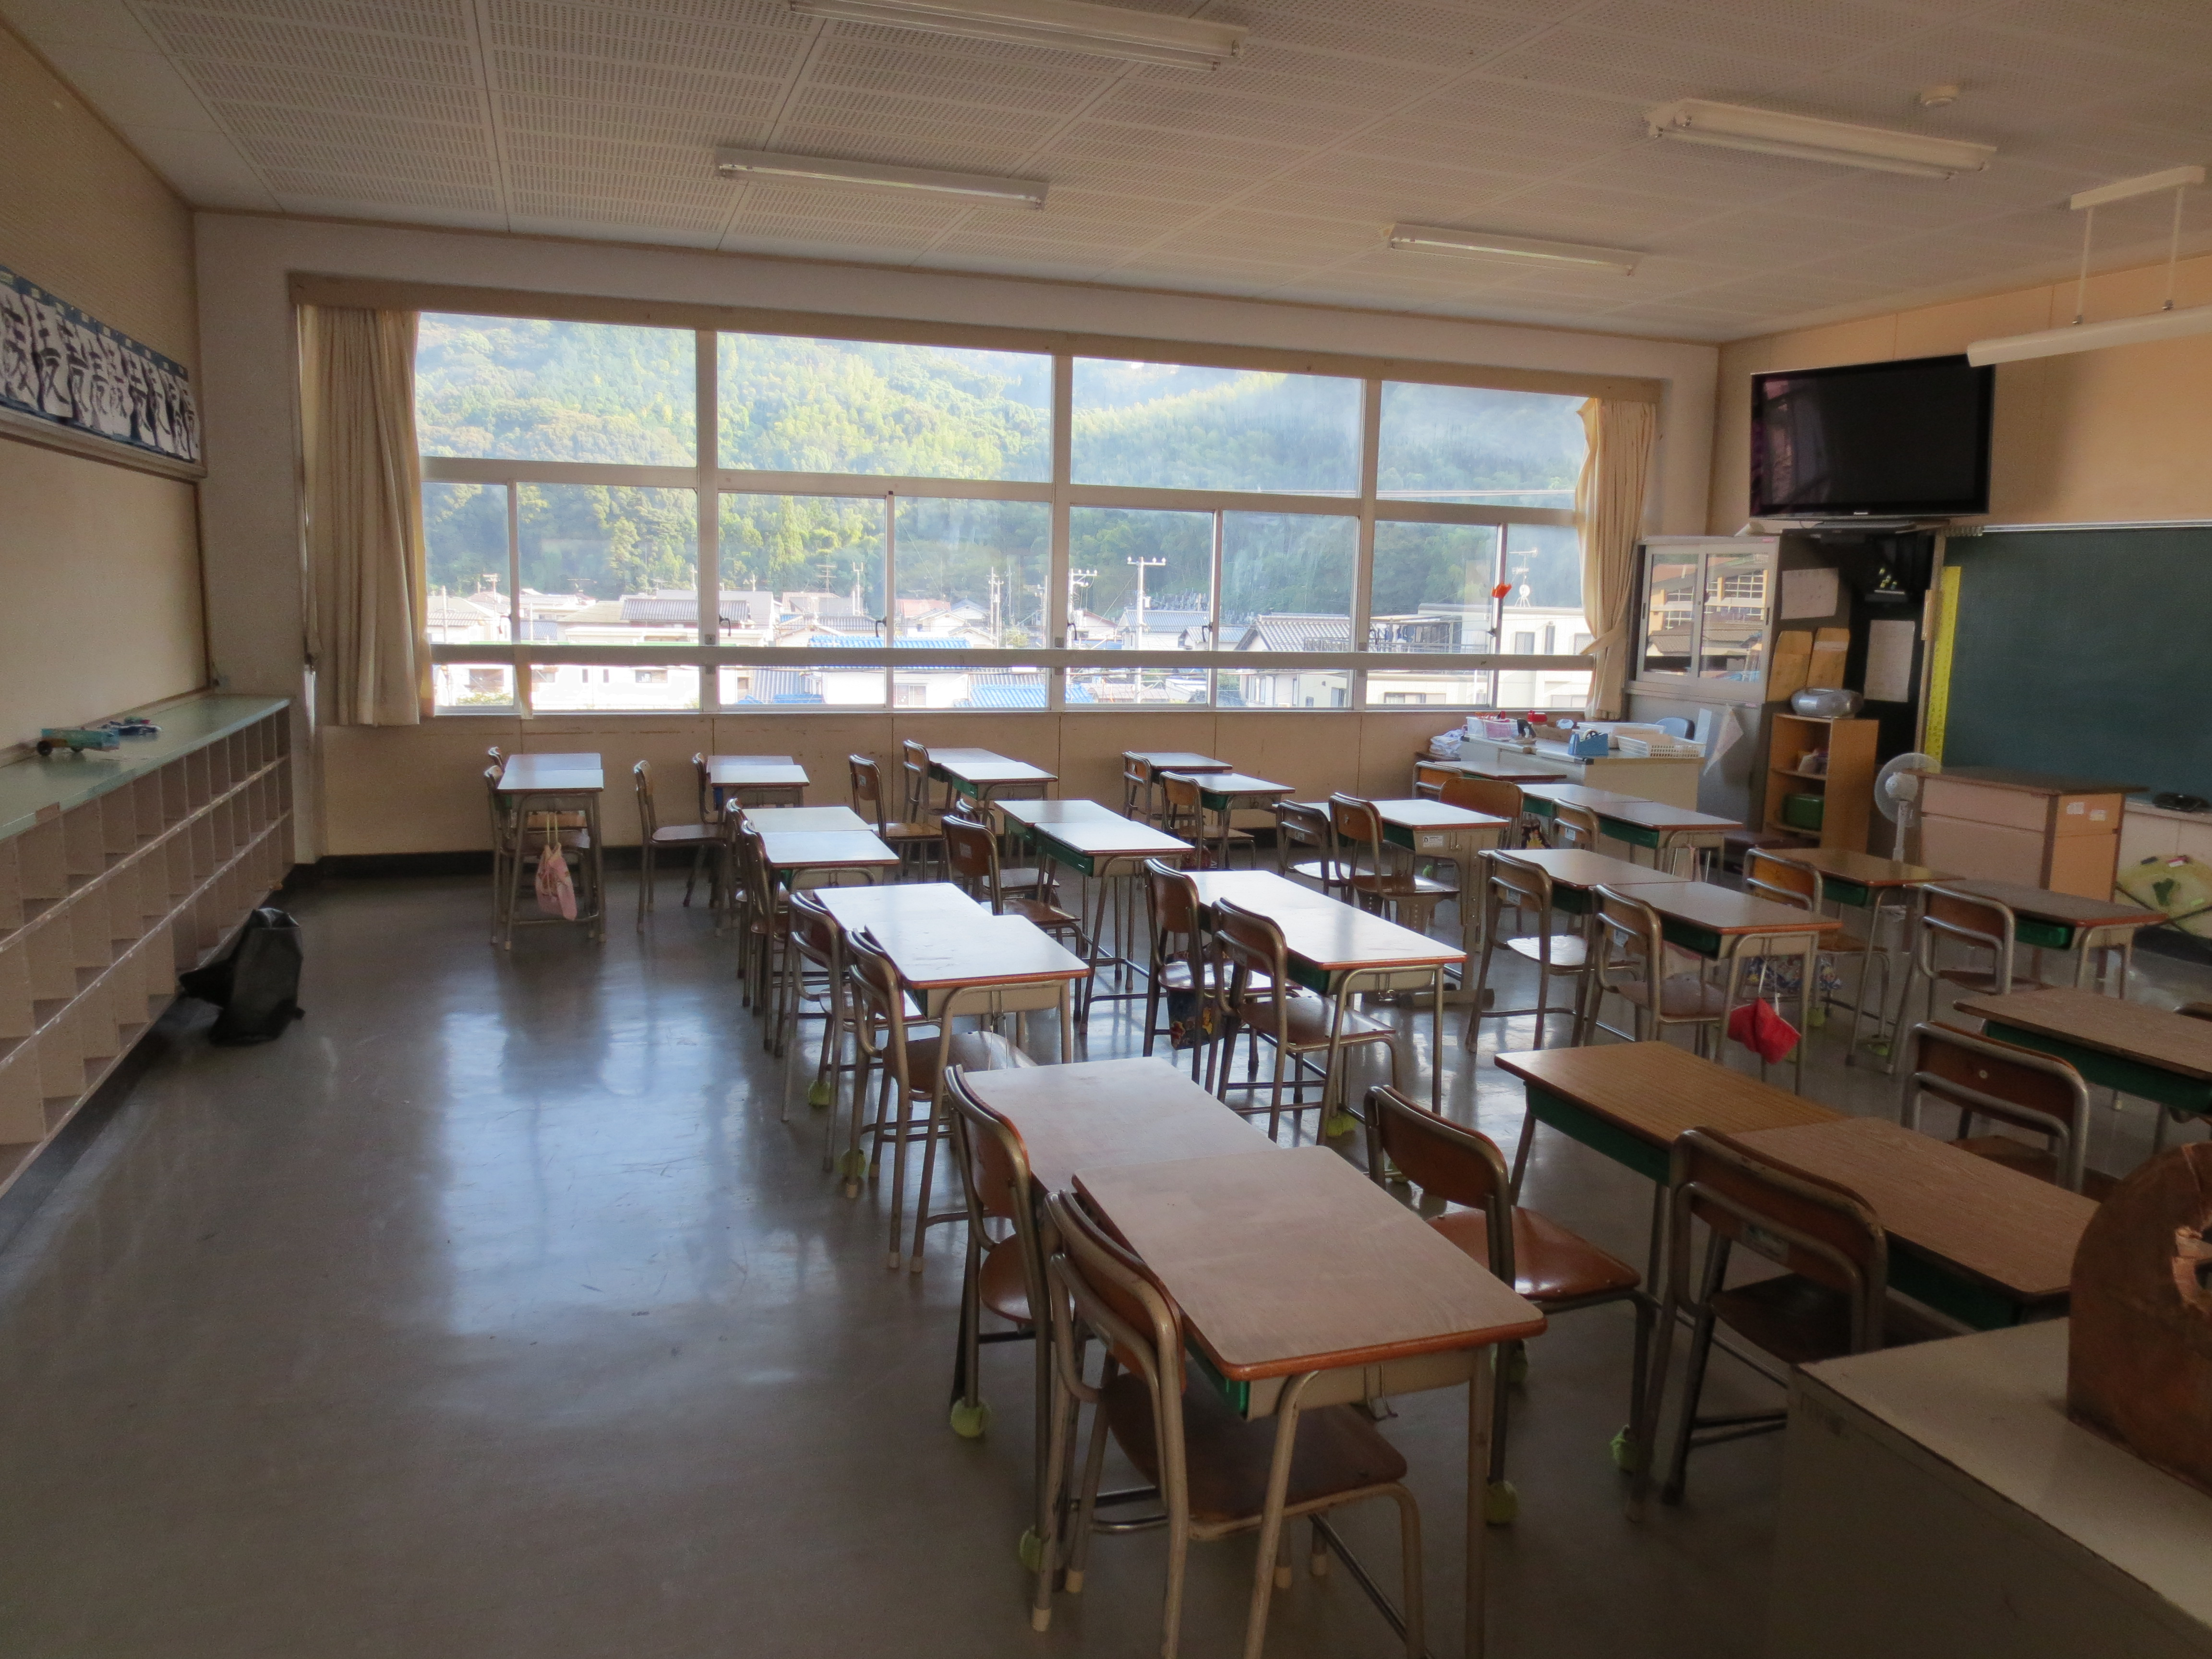 Japanese Classroom Design : Inside an elementary school in japan 素敵なライフ